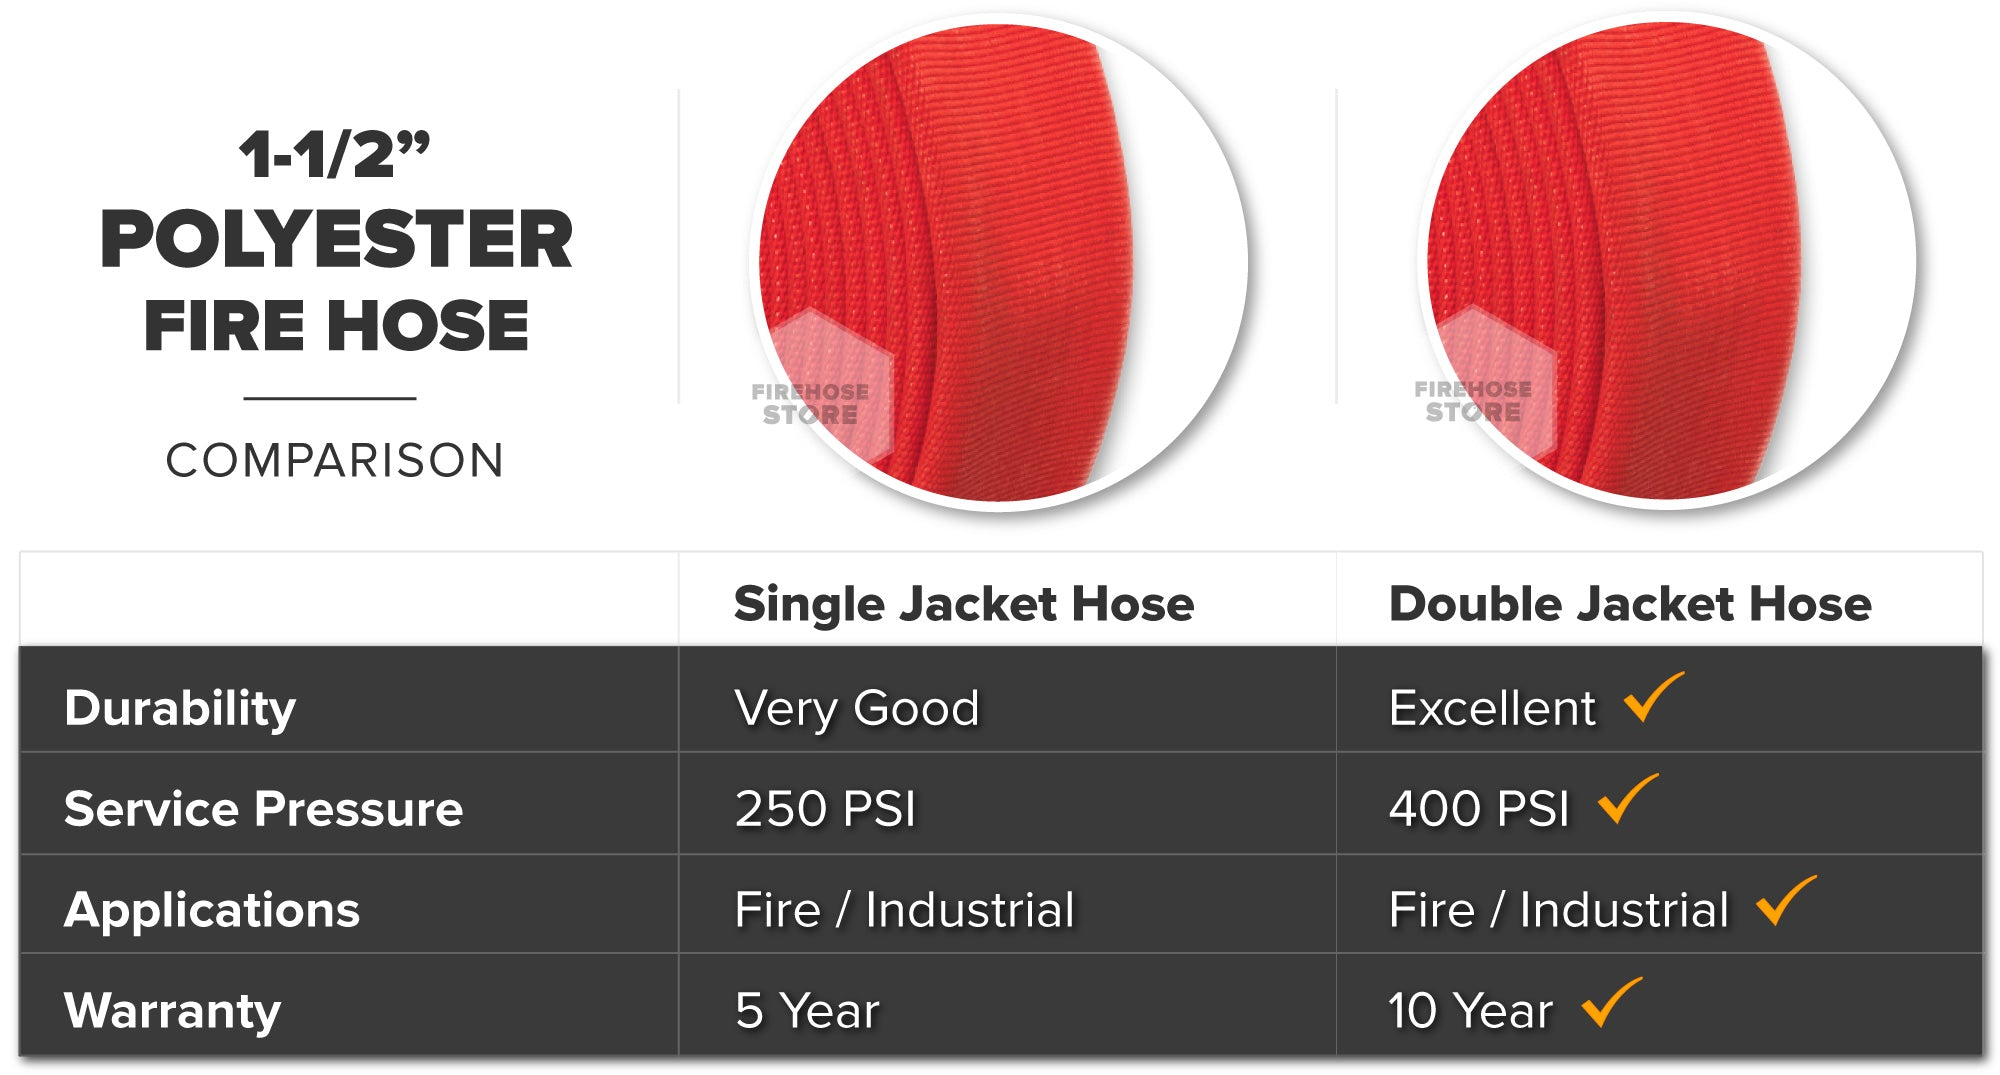 Red 1.5 Inch Double Jacket Hose Aluminum NPSH Polyester Material Overview